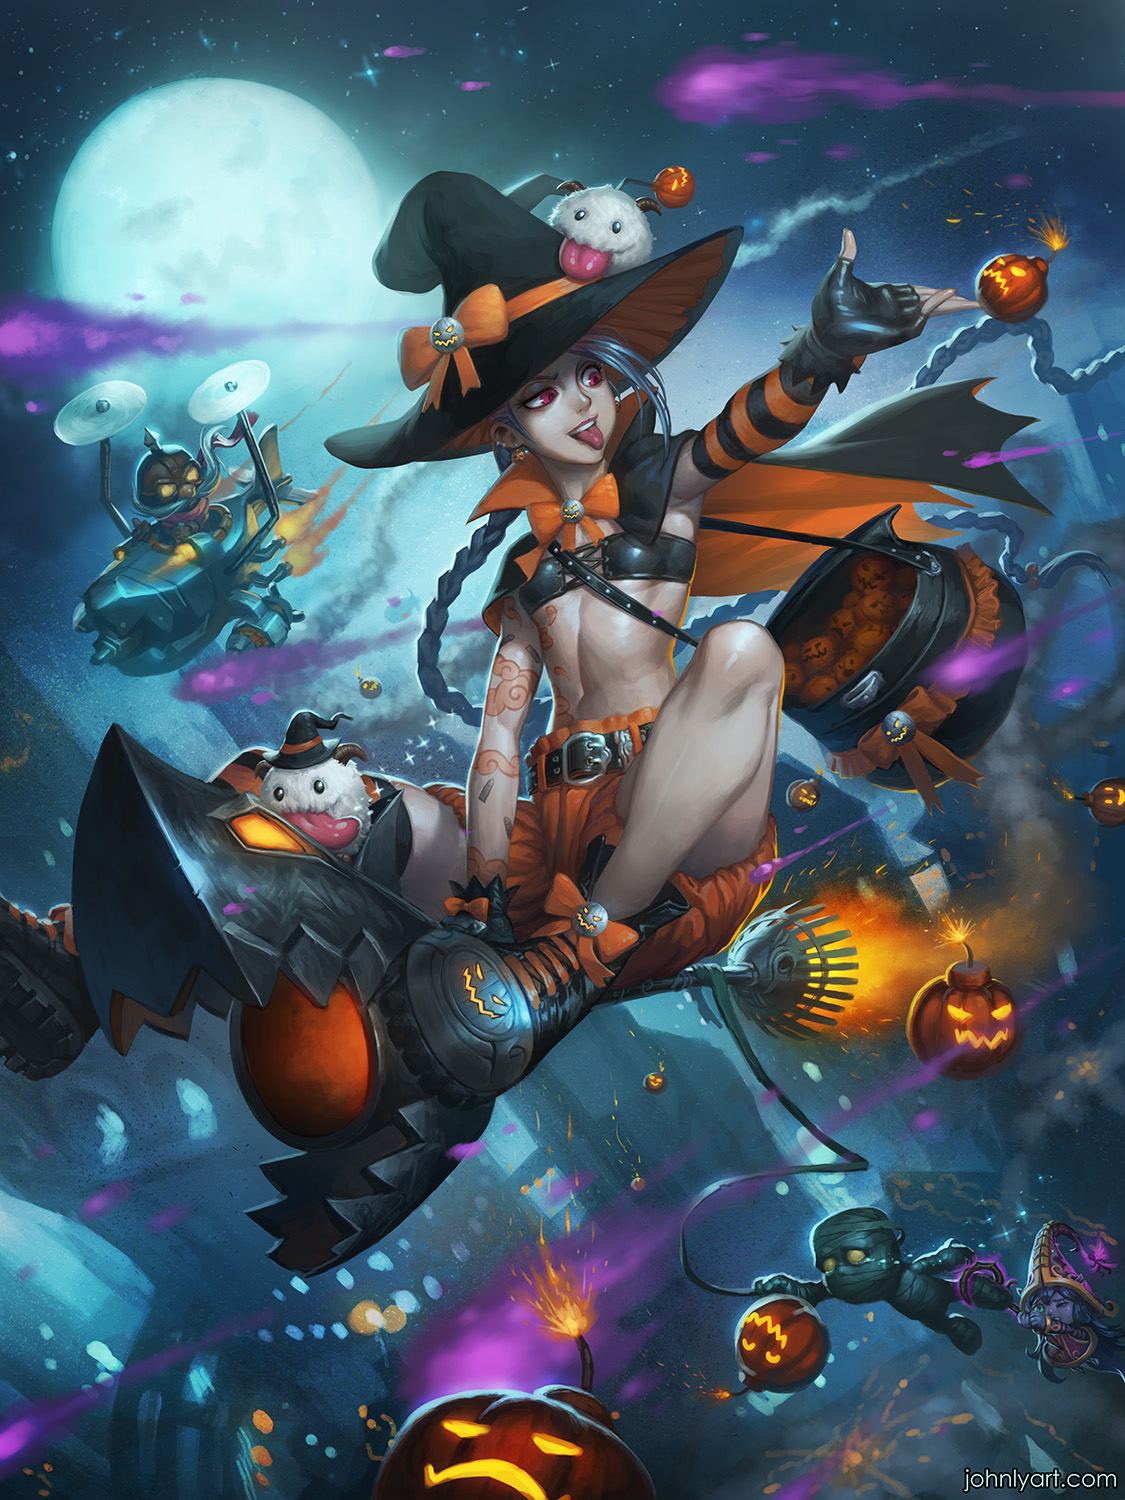 A Halloween Over Piltover by Speeh on DeviantArt